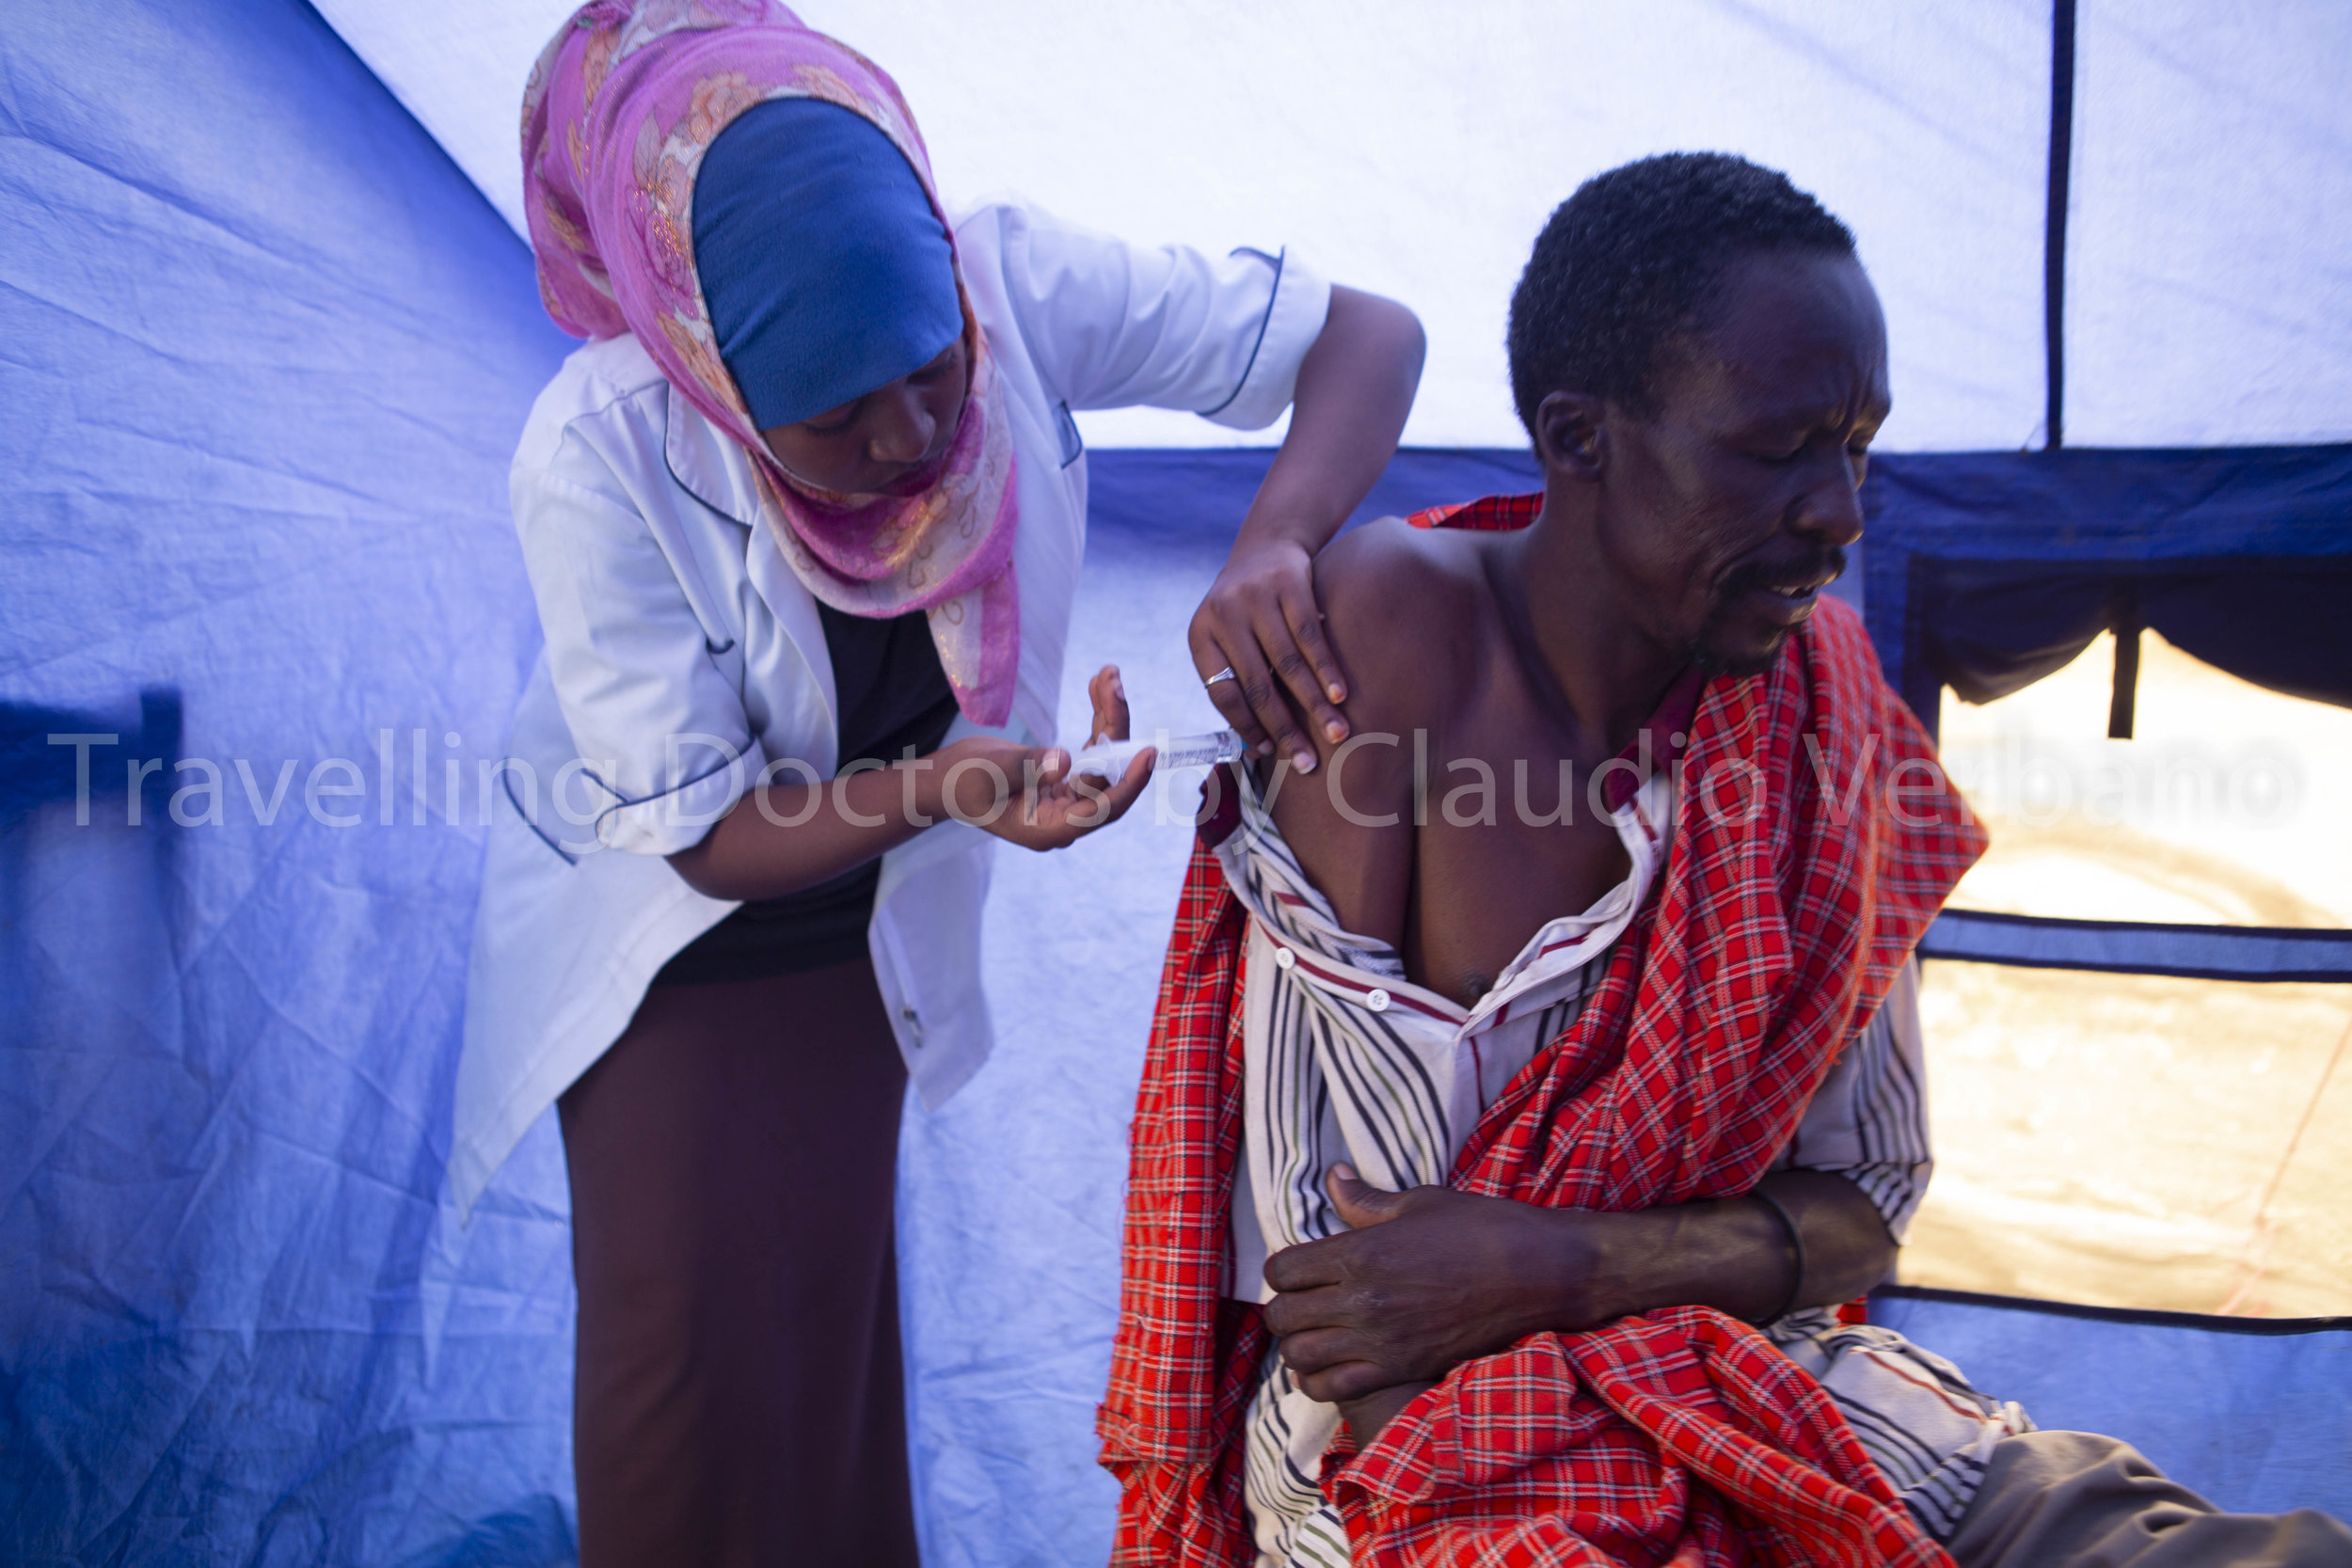 Travelling Doctors Tanzania by Claudio Verbano-19.jpg